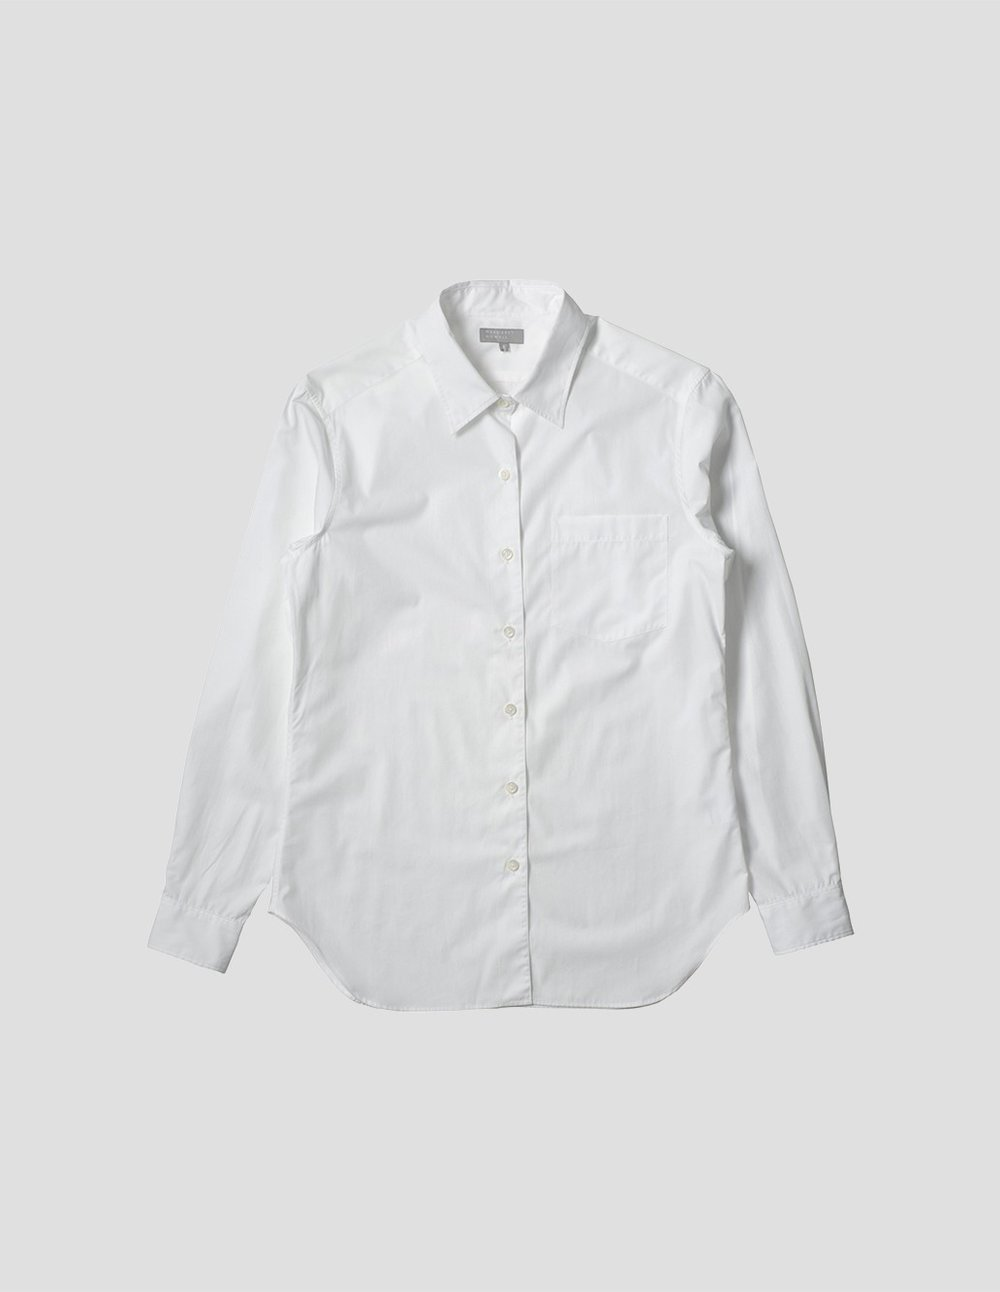 2) Cotton White Shirt Margaret Howell, Cotton Poplin Washed, £225